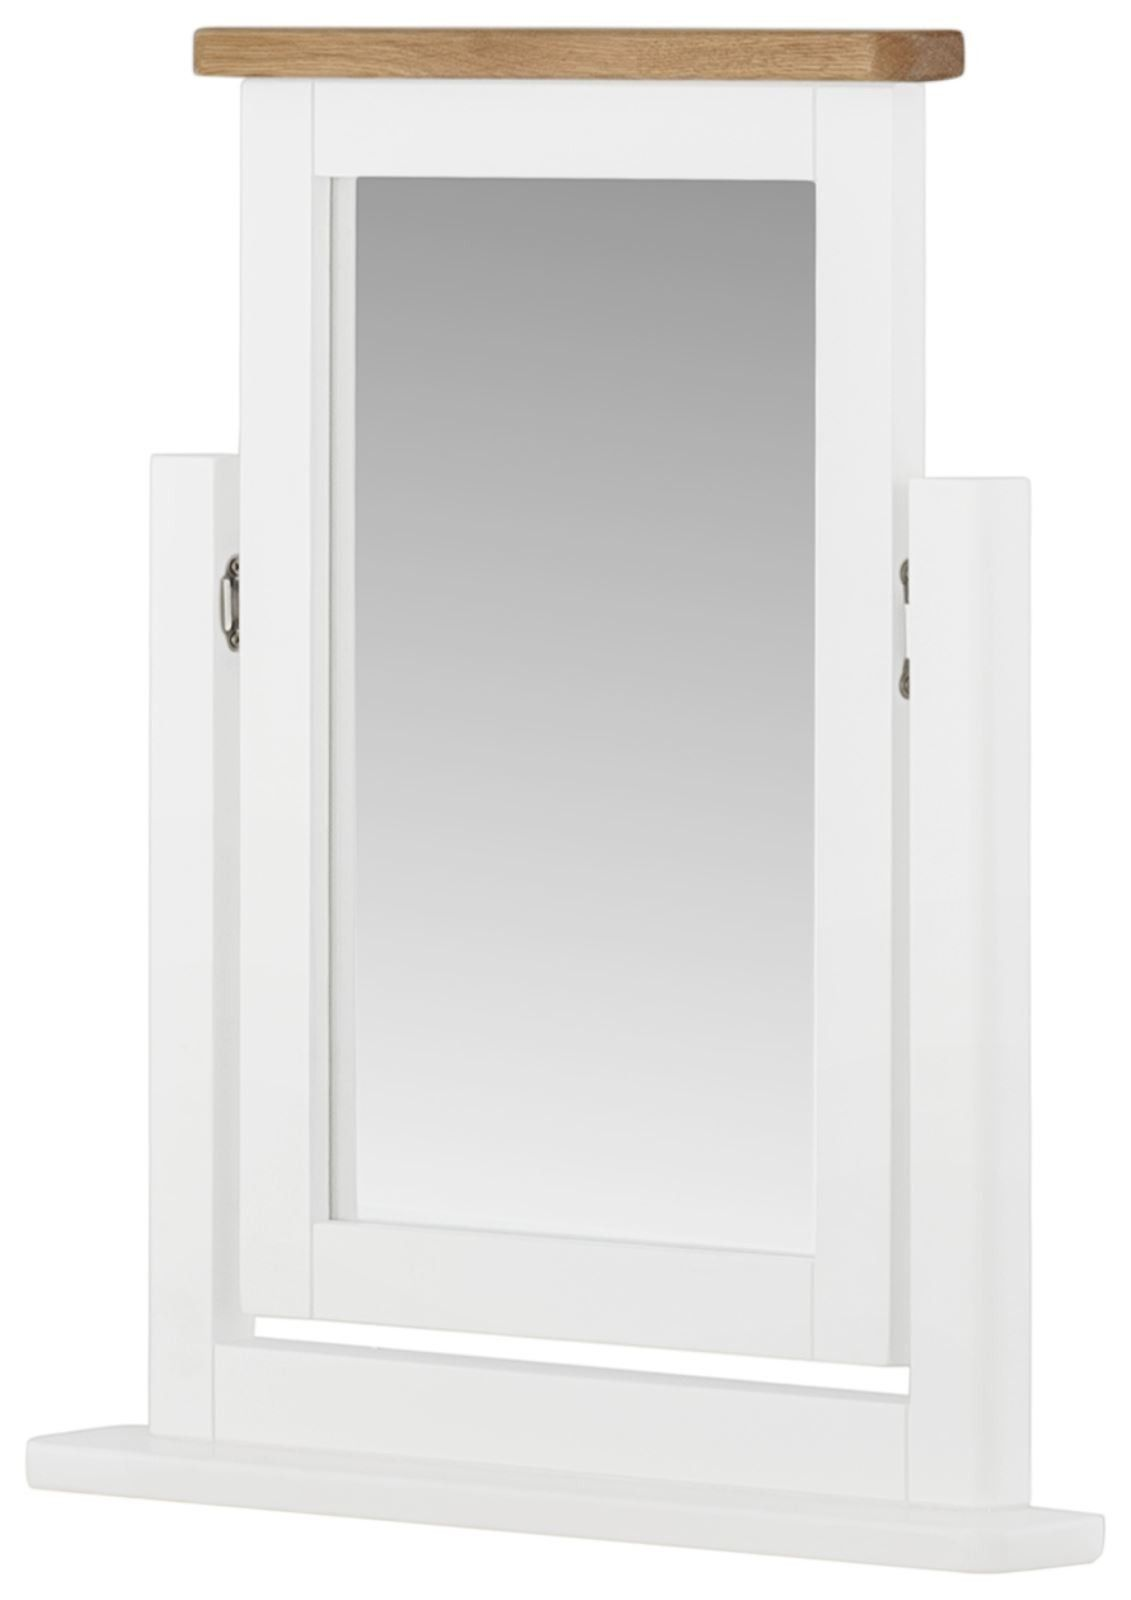 Purbeck Painted Swing Mirror - White